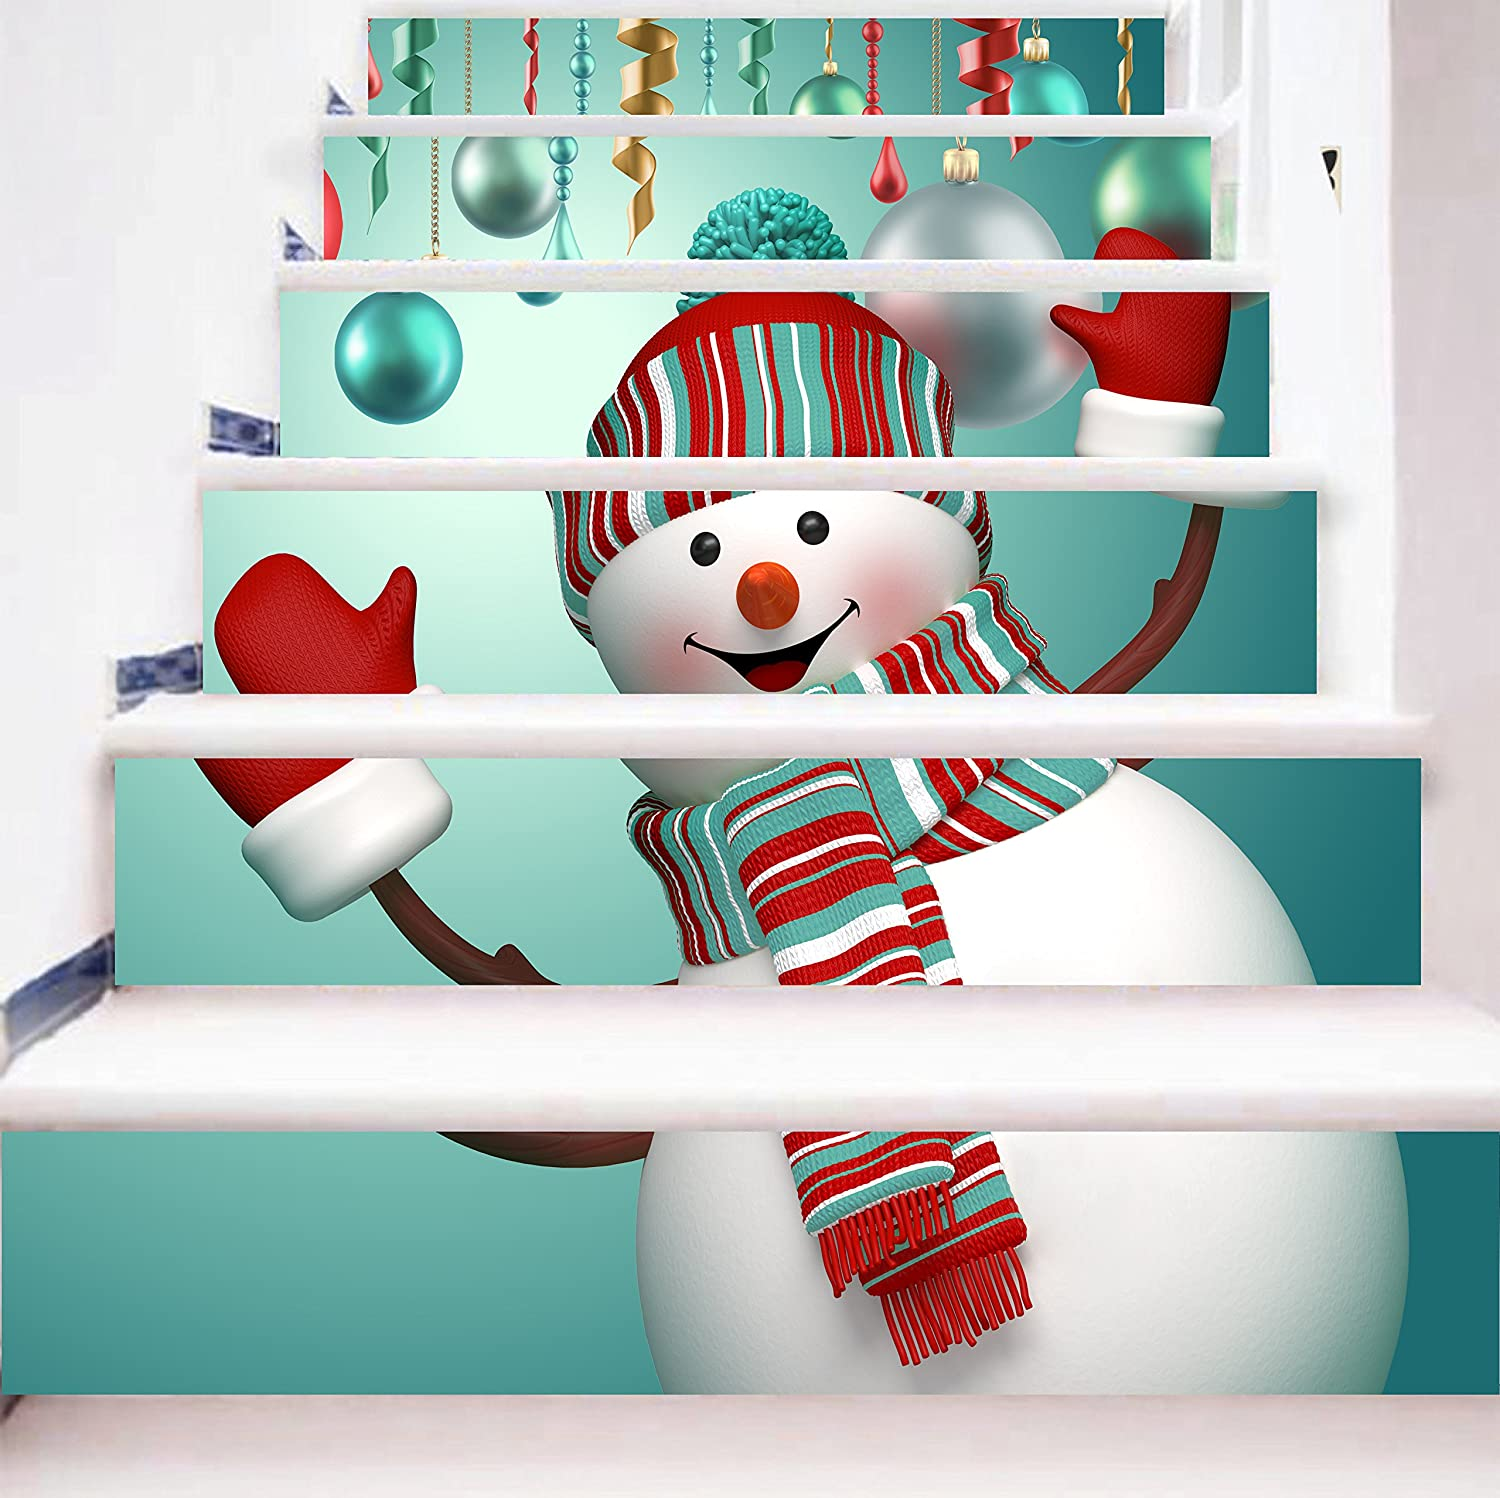 zhiyu&art decor Christmas 3D Stair Stickers Decals-6Pcs/Set Cute Snowman Stair Risers Stickers Decals Removable Staircase Decals Vinyl Wall Sticker for Christmas Decoration